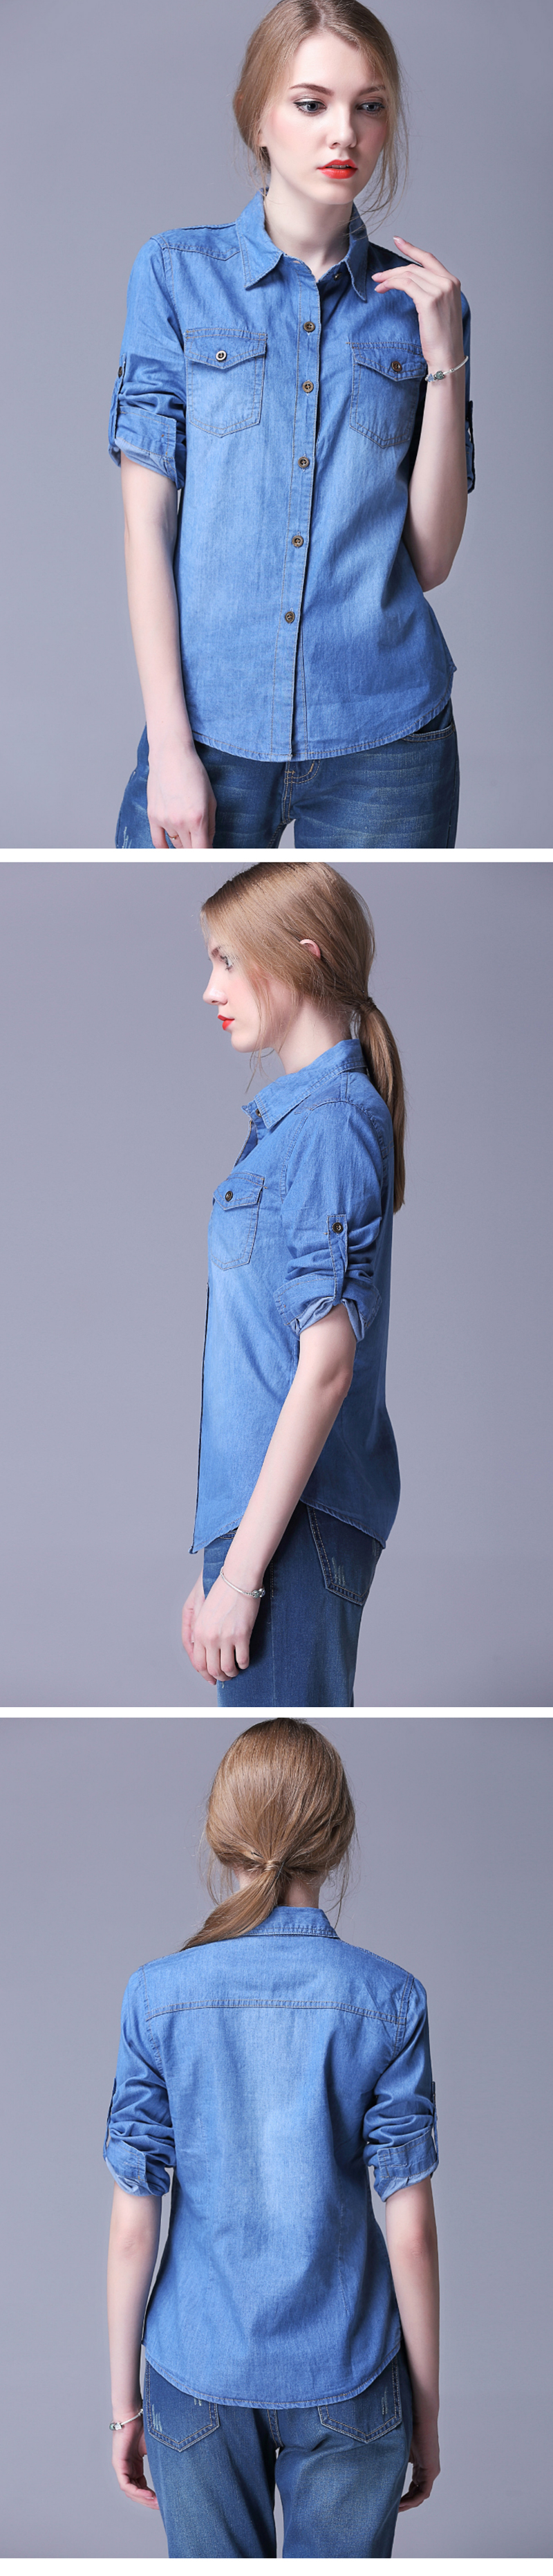 Europe-and-the-United-States-bf-loose-grain-of-button-stars-jeans-pocket-irregular-tassel-bigger-sizes_02